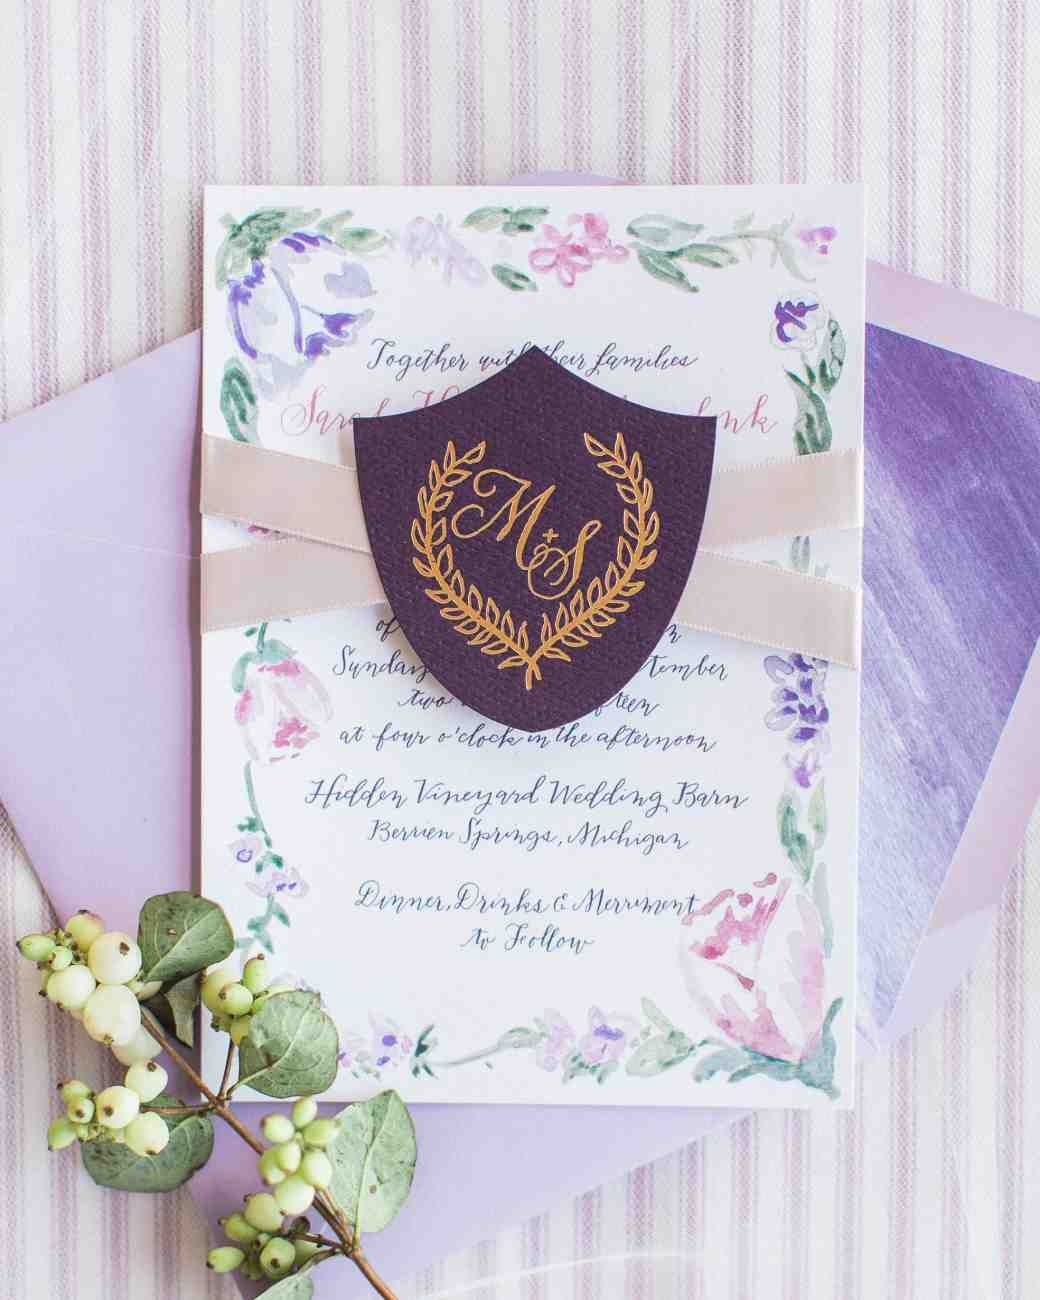 32 Dreamy Watercolor Wedding Ideas   Martha Stewart Weddings - Laura Hooper Calligraphy designed and calligraphed this purple watercolor invitation.